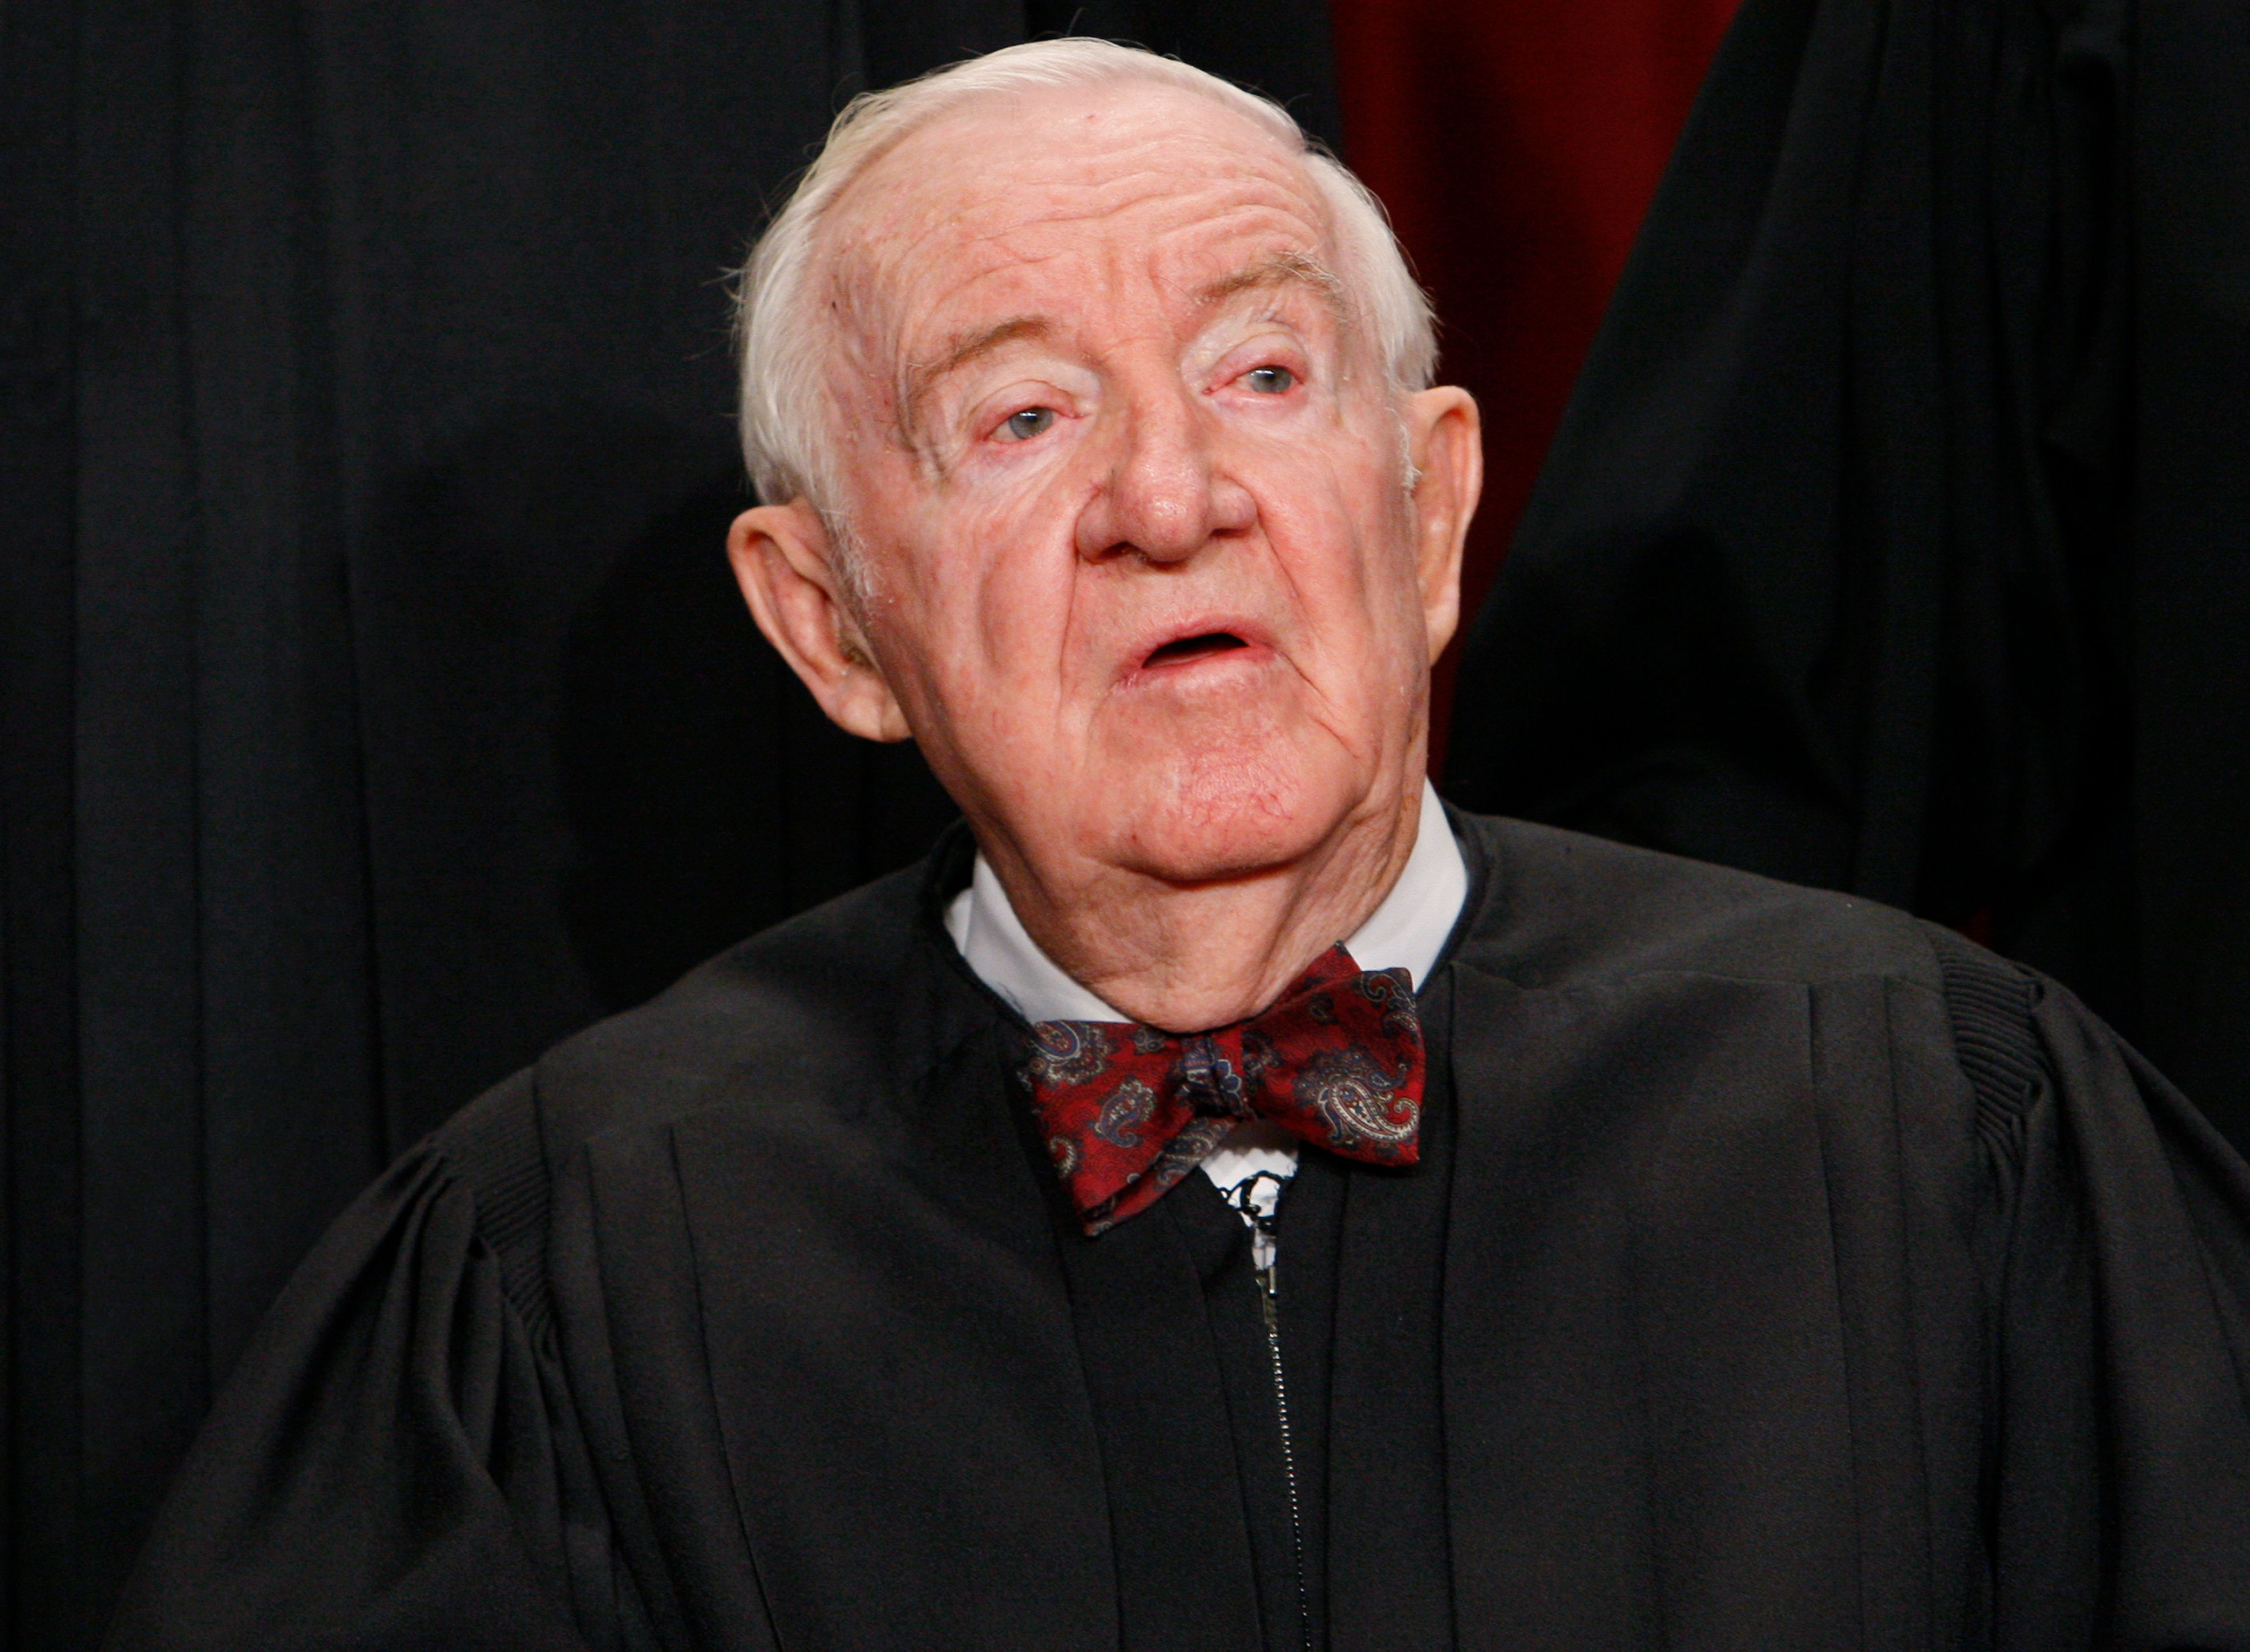 Justice John Stevens served on the Supreme Court from 1975 to 2010.